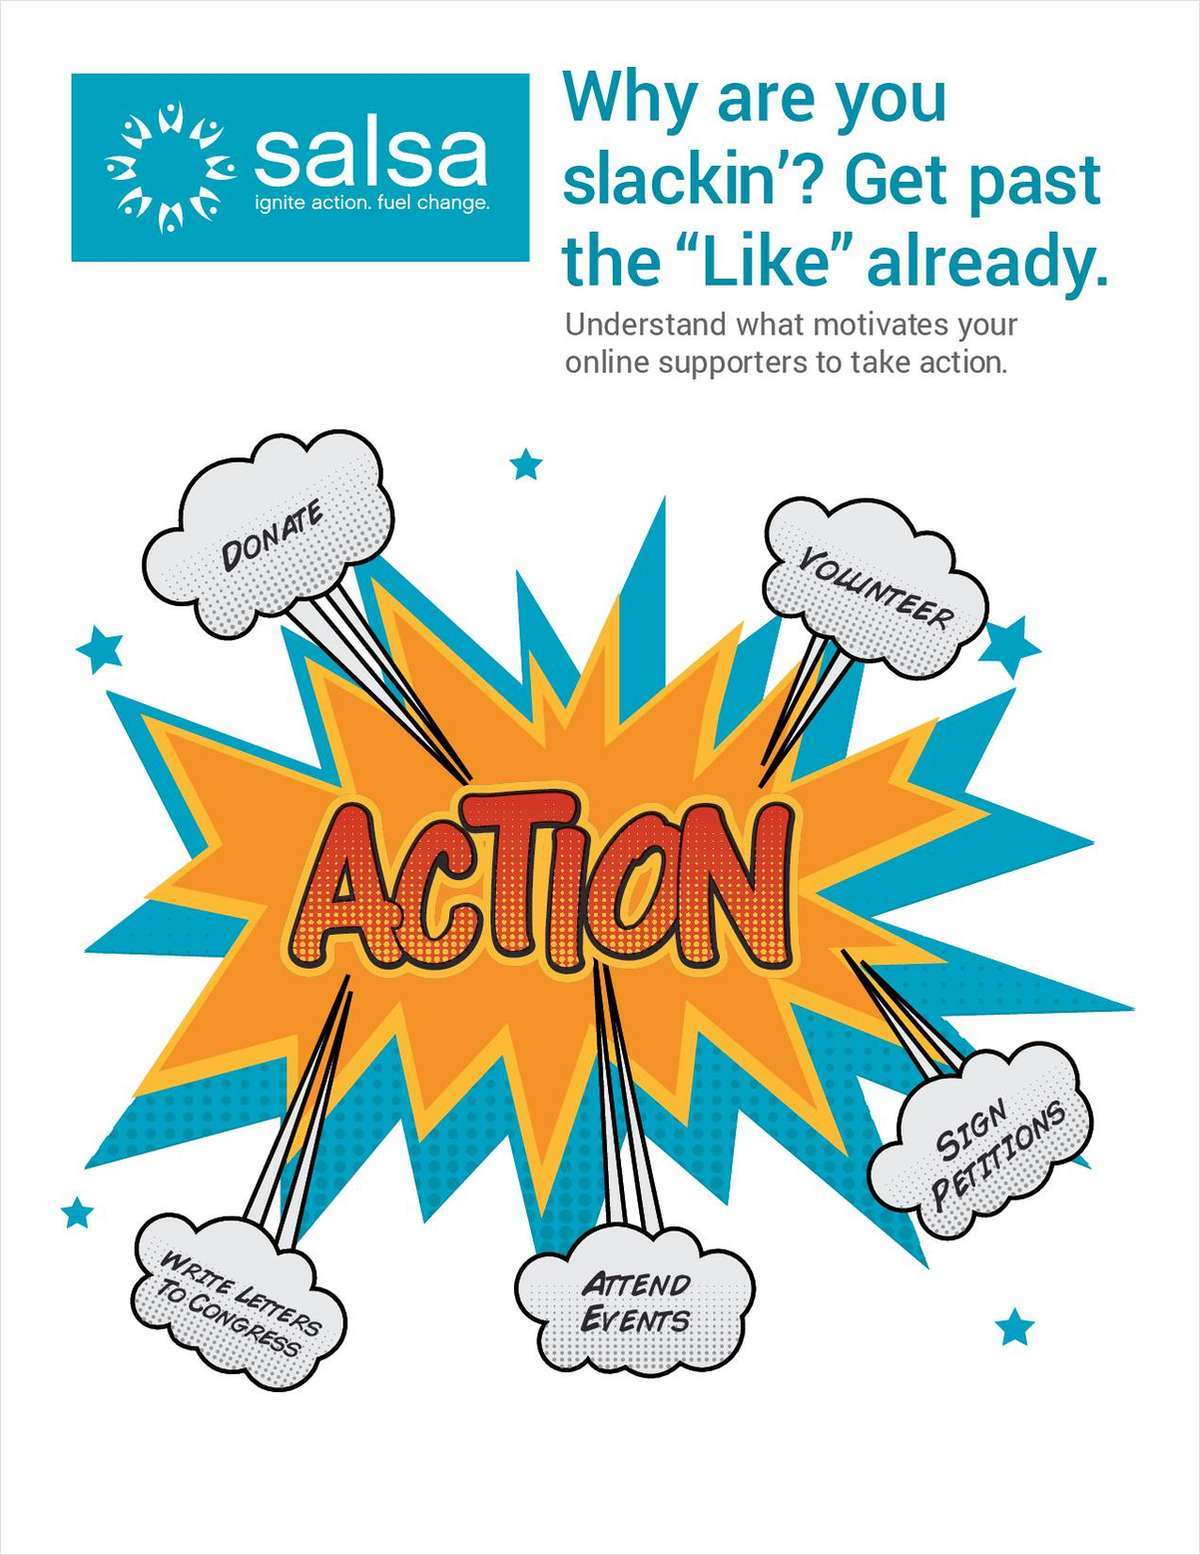 Motivate your online supporters to take action